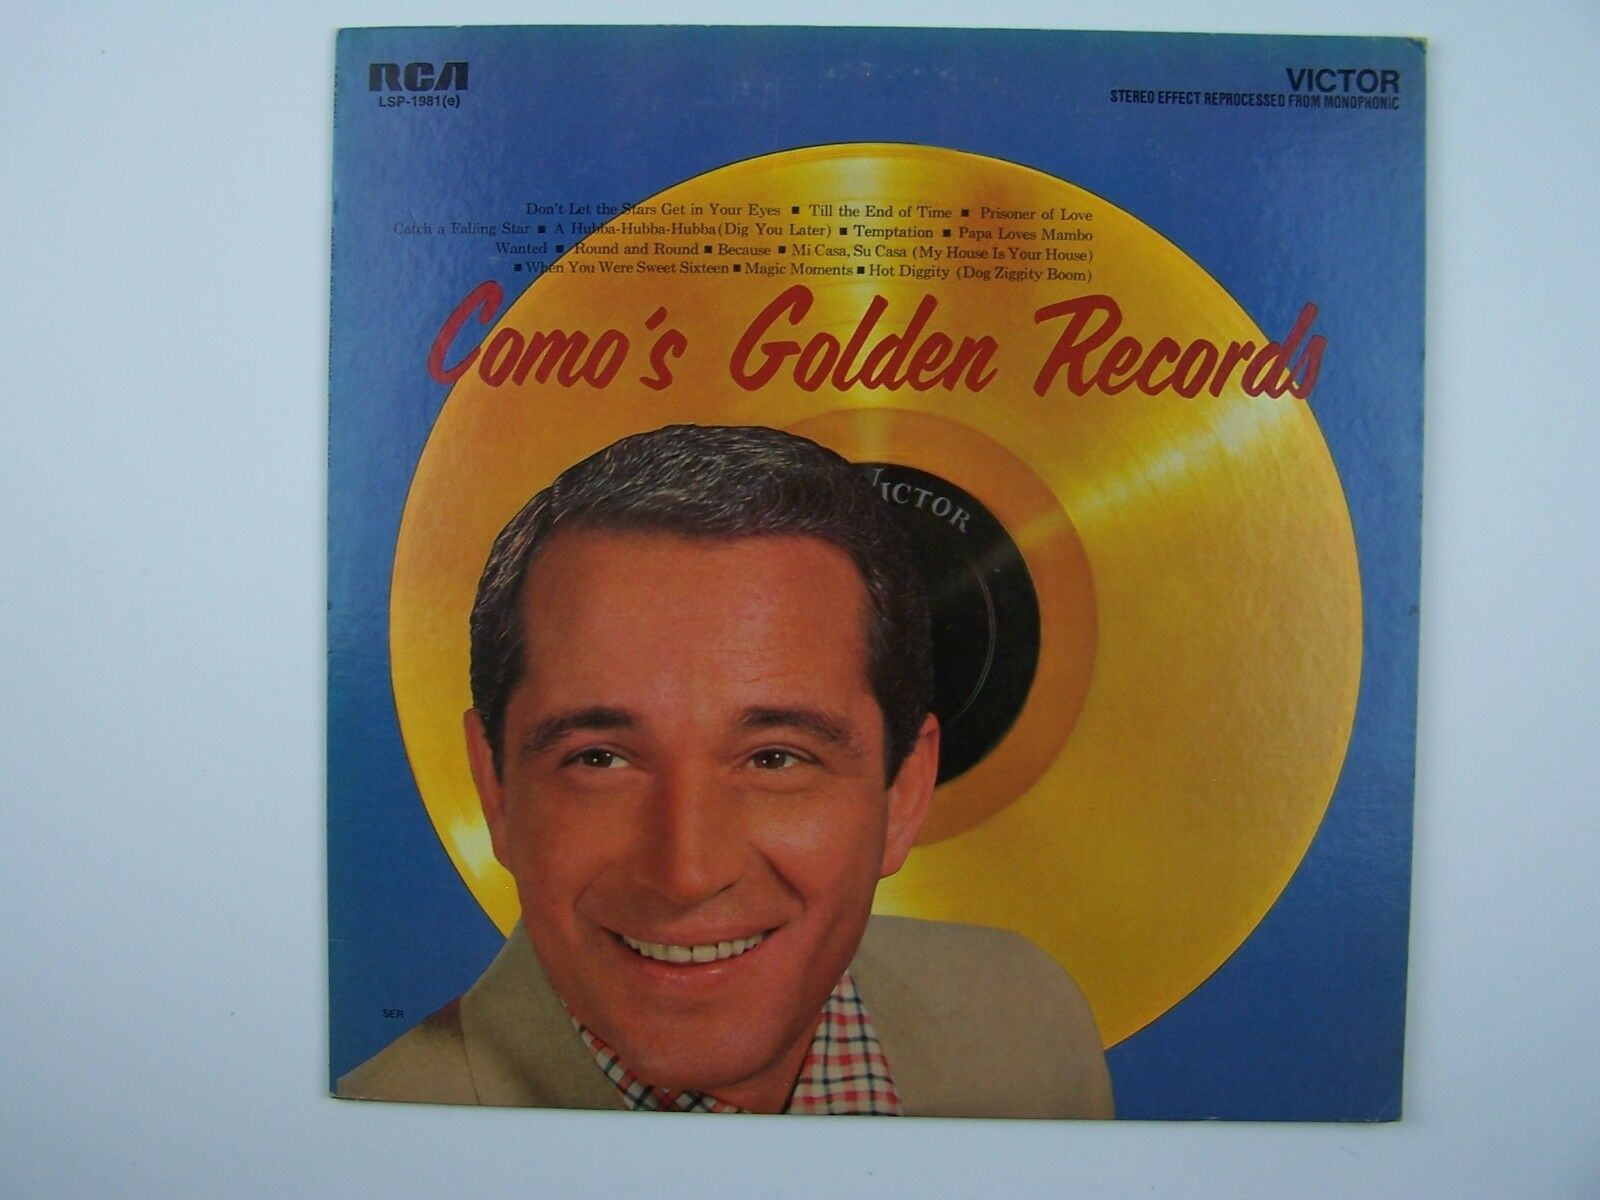 Perry Como - Como's Golden Records Vinyl LP Record Albu